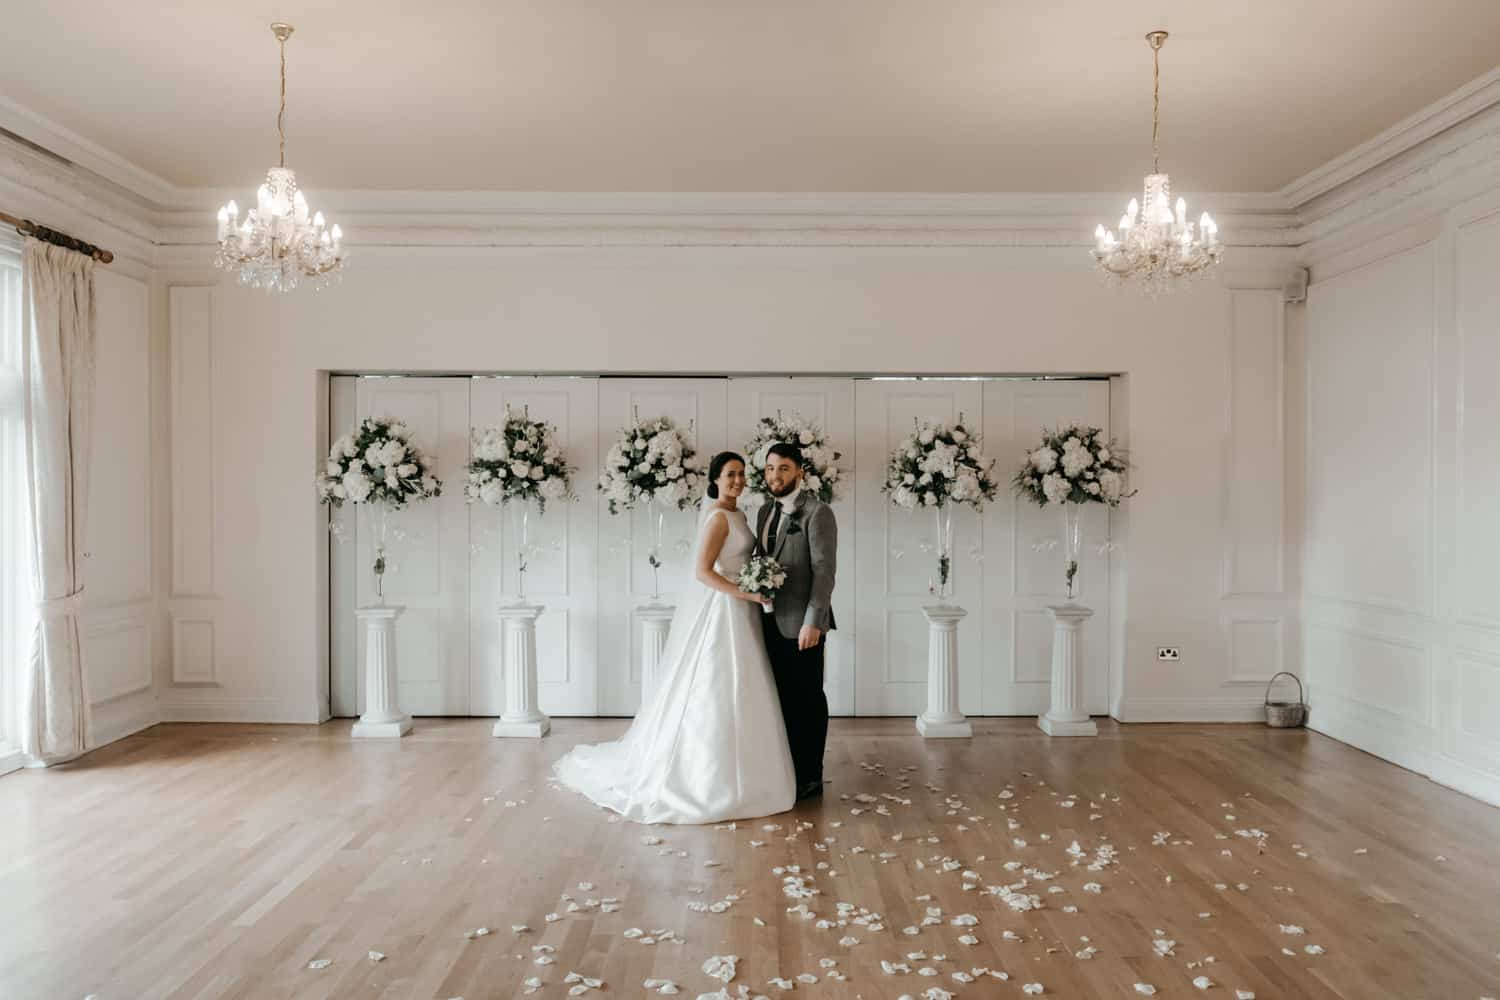 stunning indoor bride and groom portrait